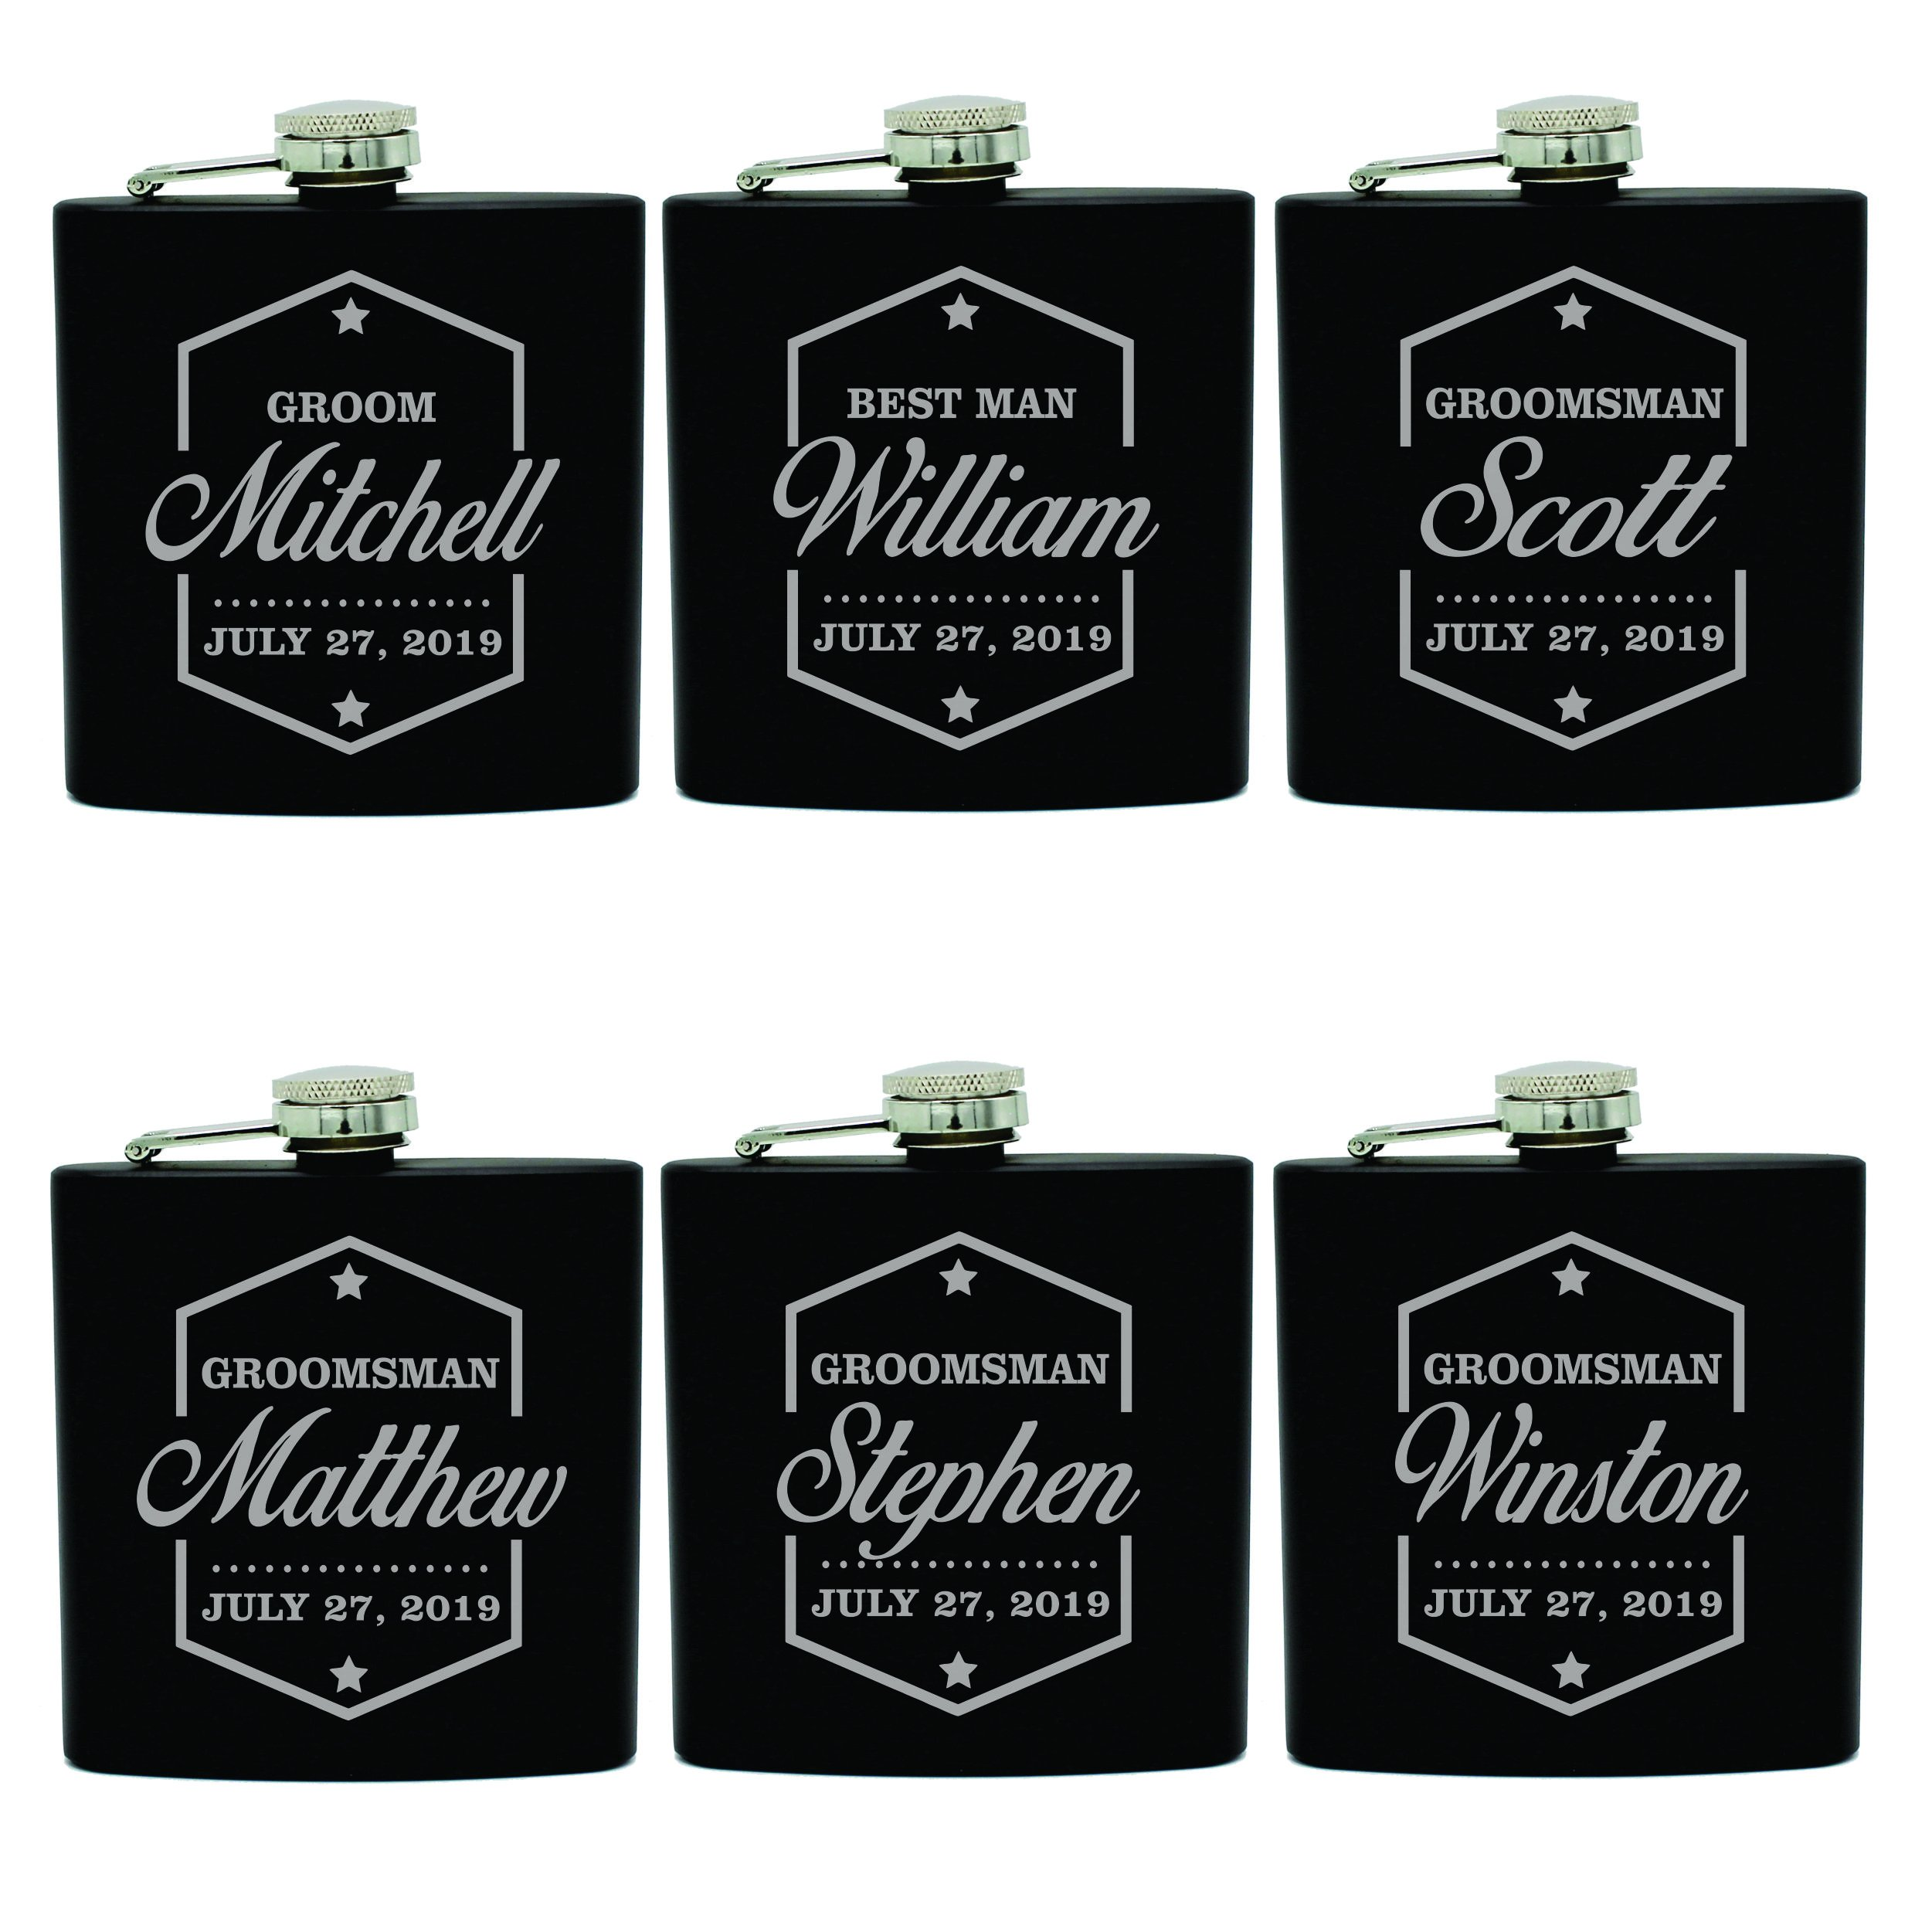 Set of 3, Set of 6 and more Custom Engraved Groomsman Flask Gift Sets - Personalized Wedding Party Flasks - Badge Style (6) by My Personal Memories